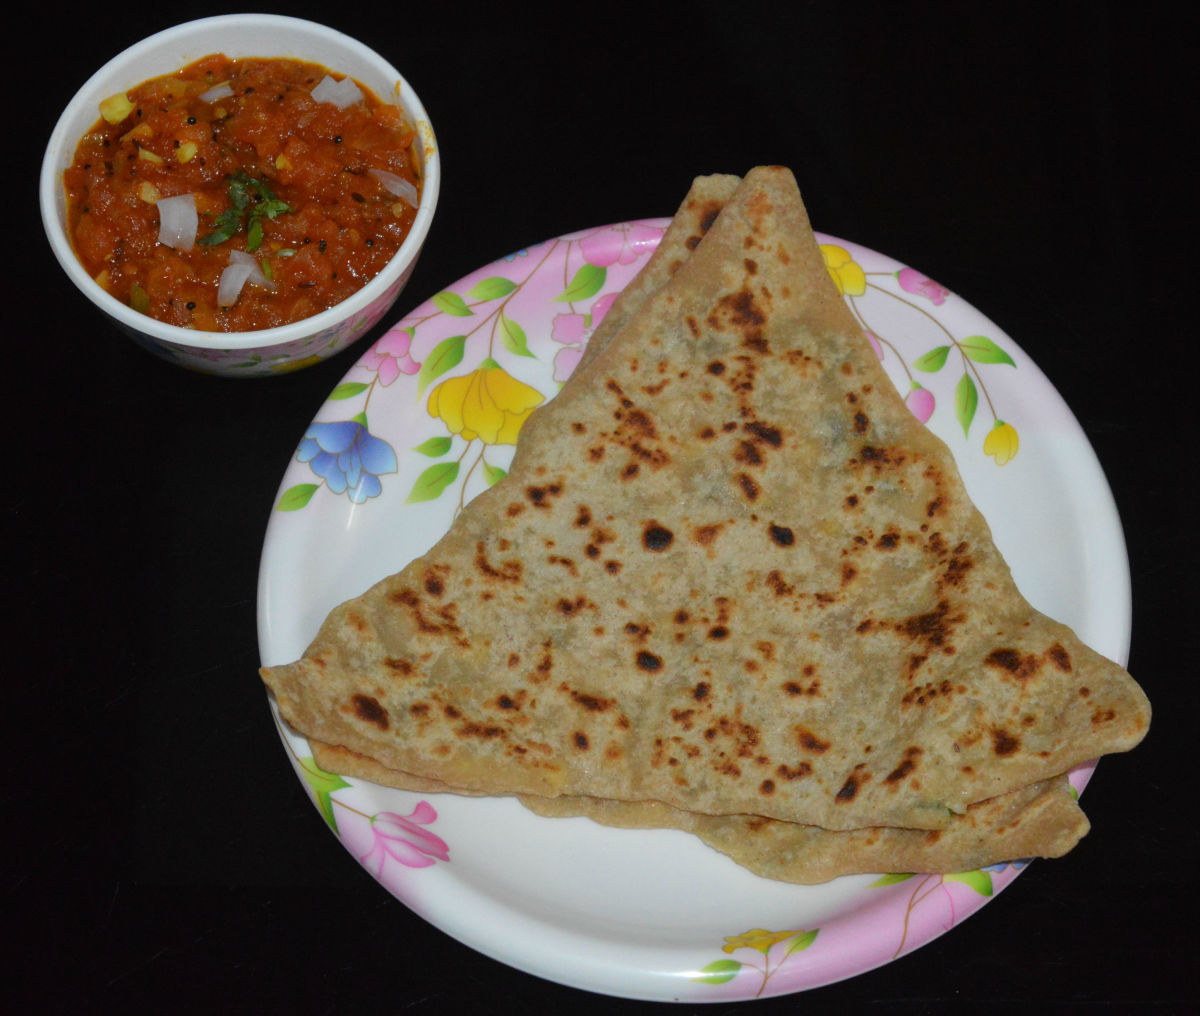 Paneer paratha served with homemade tomato salsa